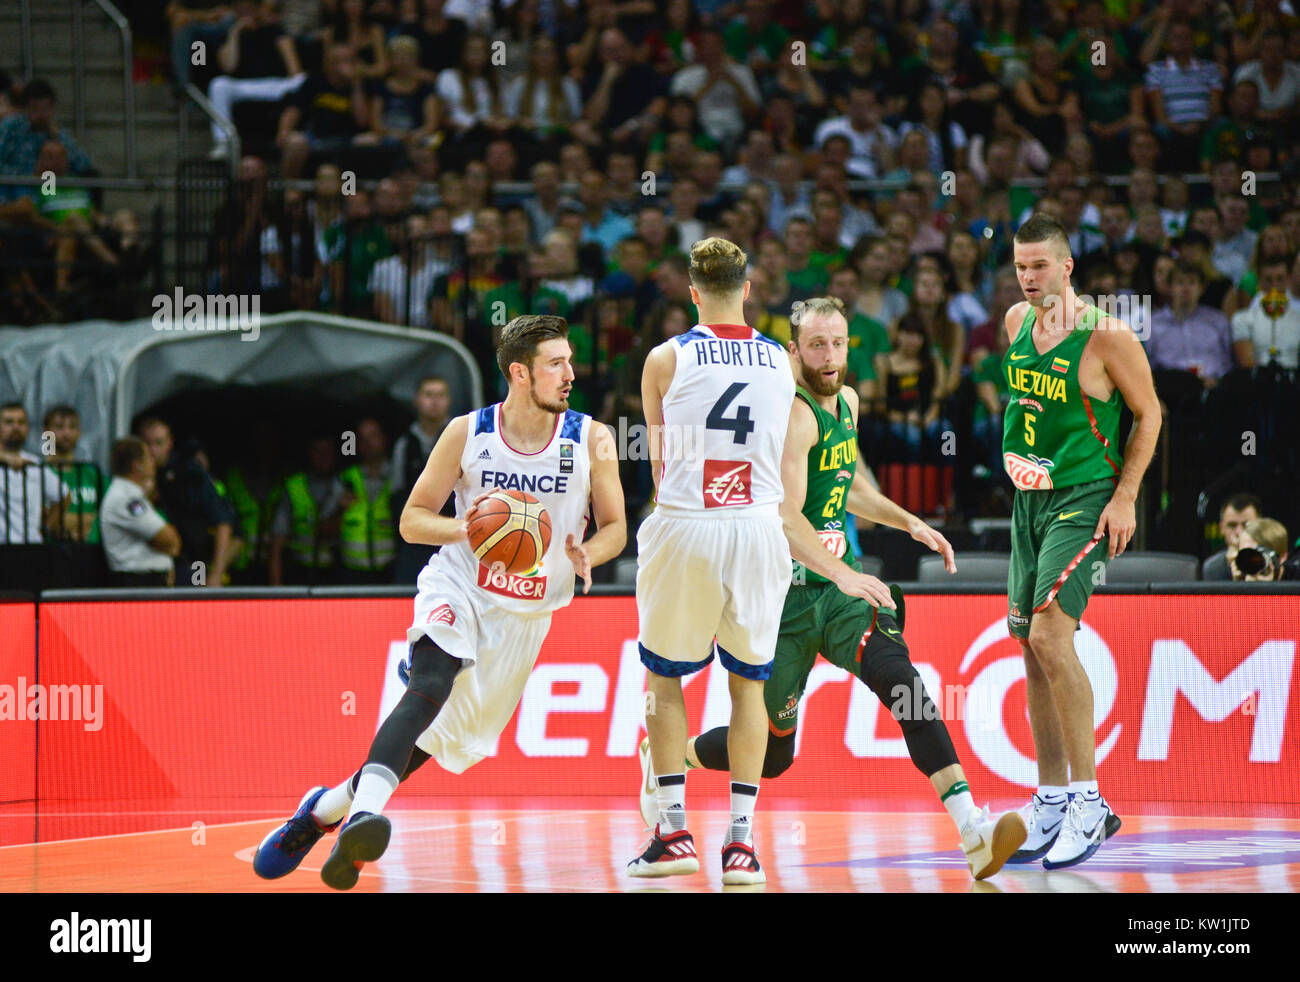 Nando de Colo playing pick and roll offense with teammate Thomas Heurtel (France) against Lithuania - Stock Image